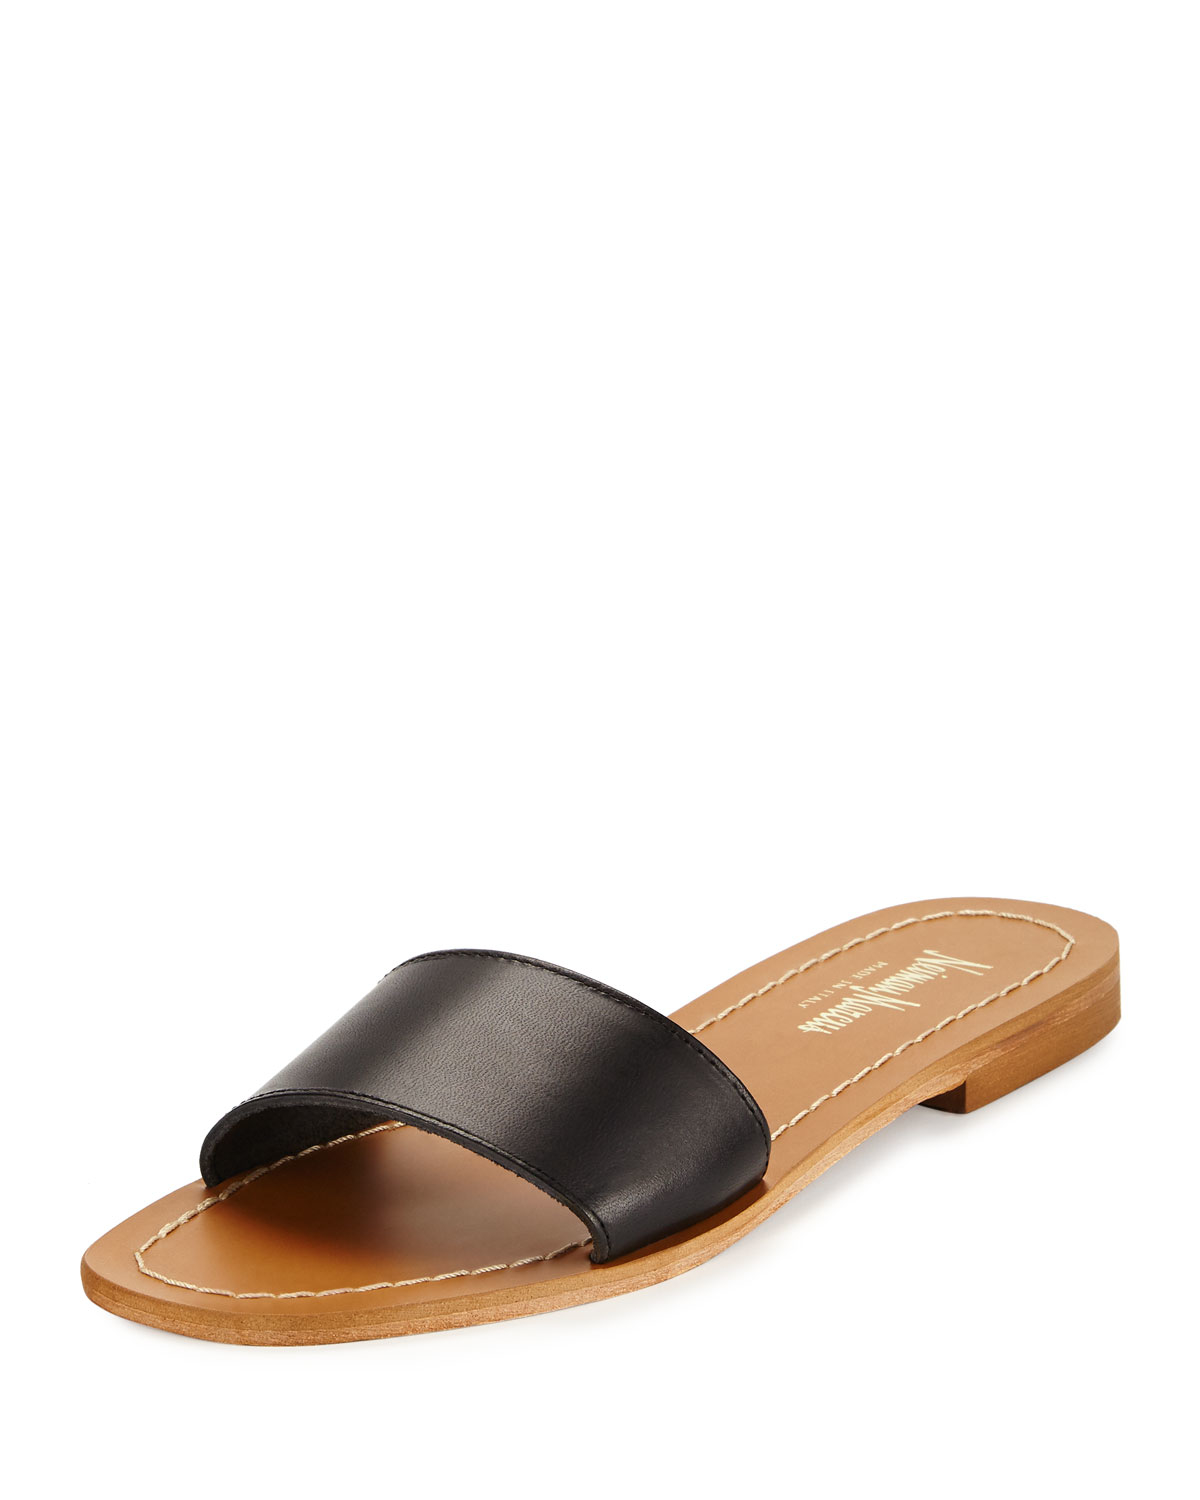 lyst neiman marcus filomena leather slide sandal in brown